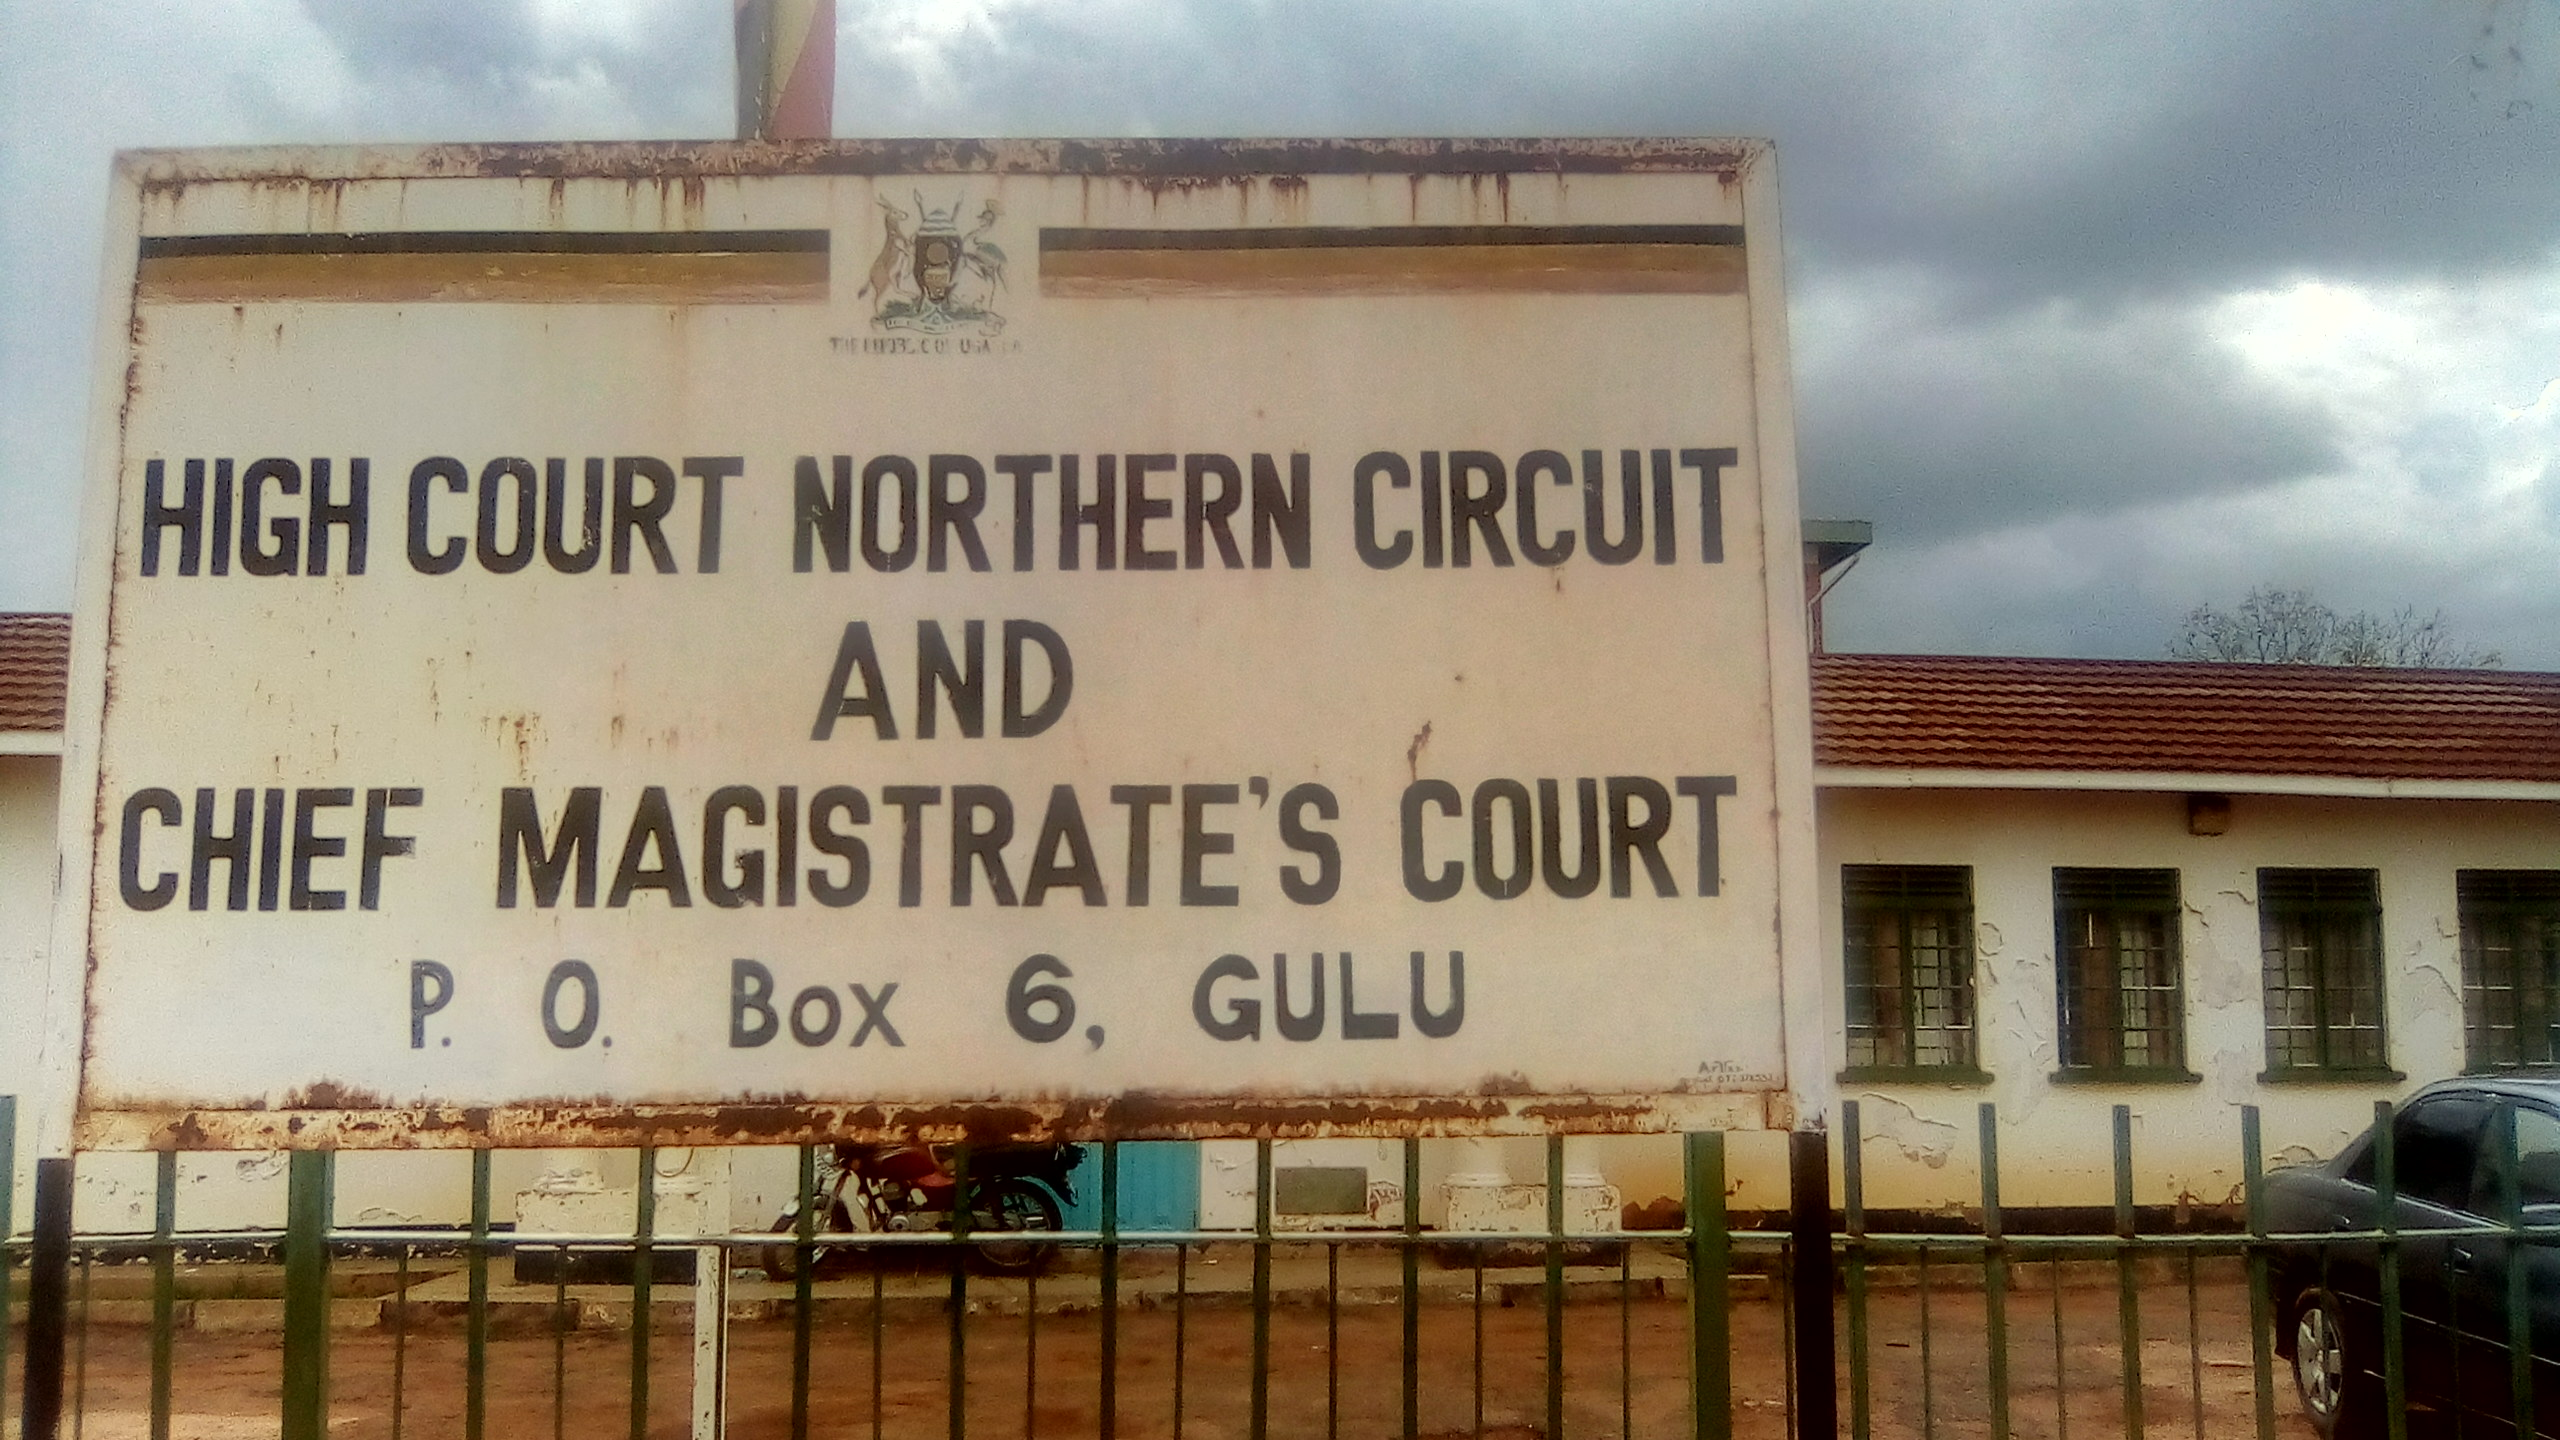 Man Remanded For Burning WIfe's House